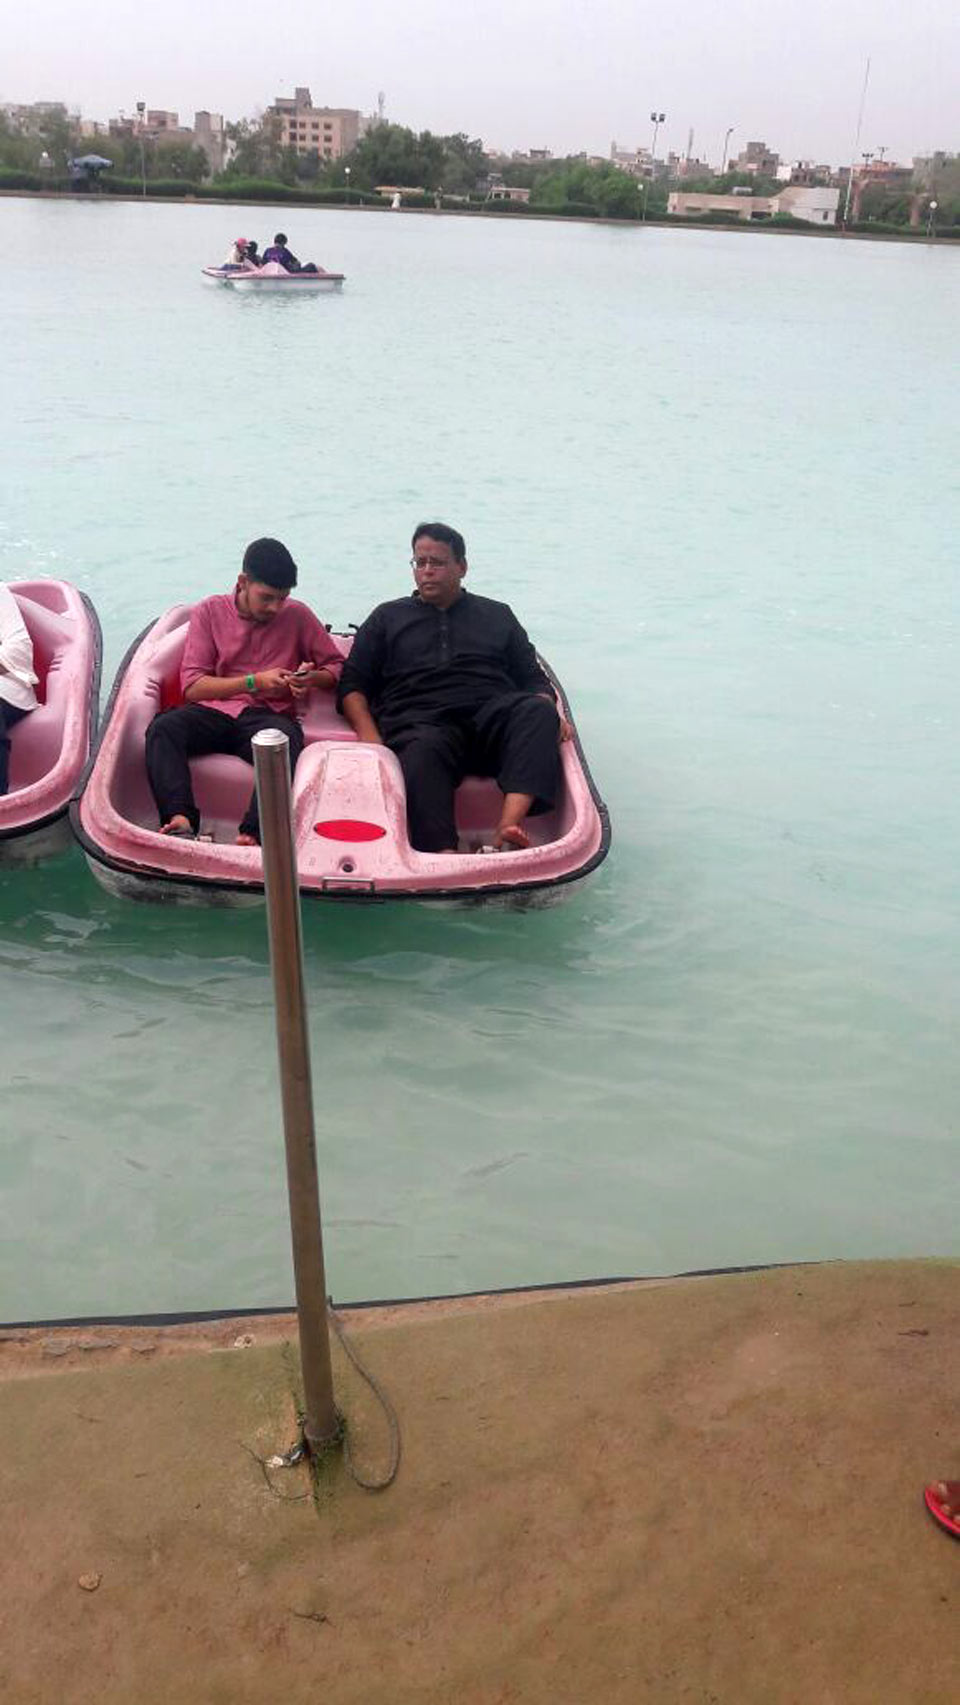 Dr. Ata Ur Rehman and Obaid Ur Rehman are enjoying the paddling boat